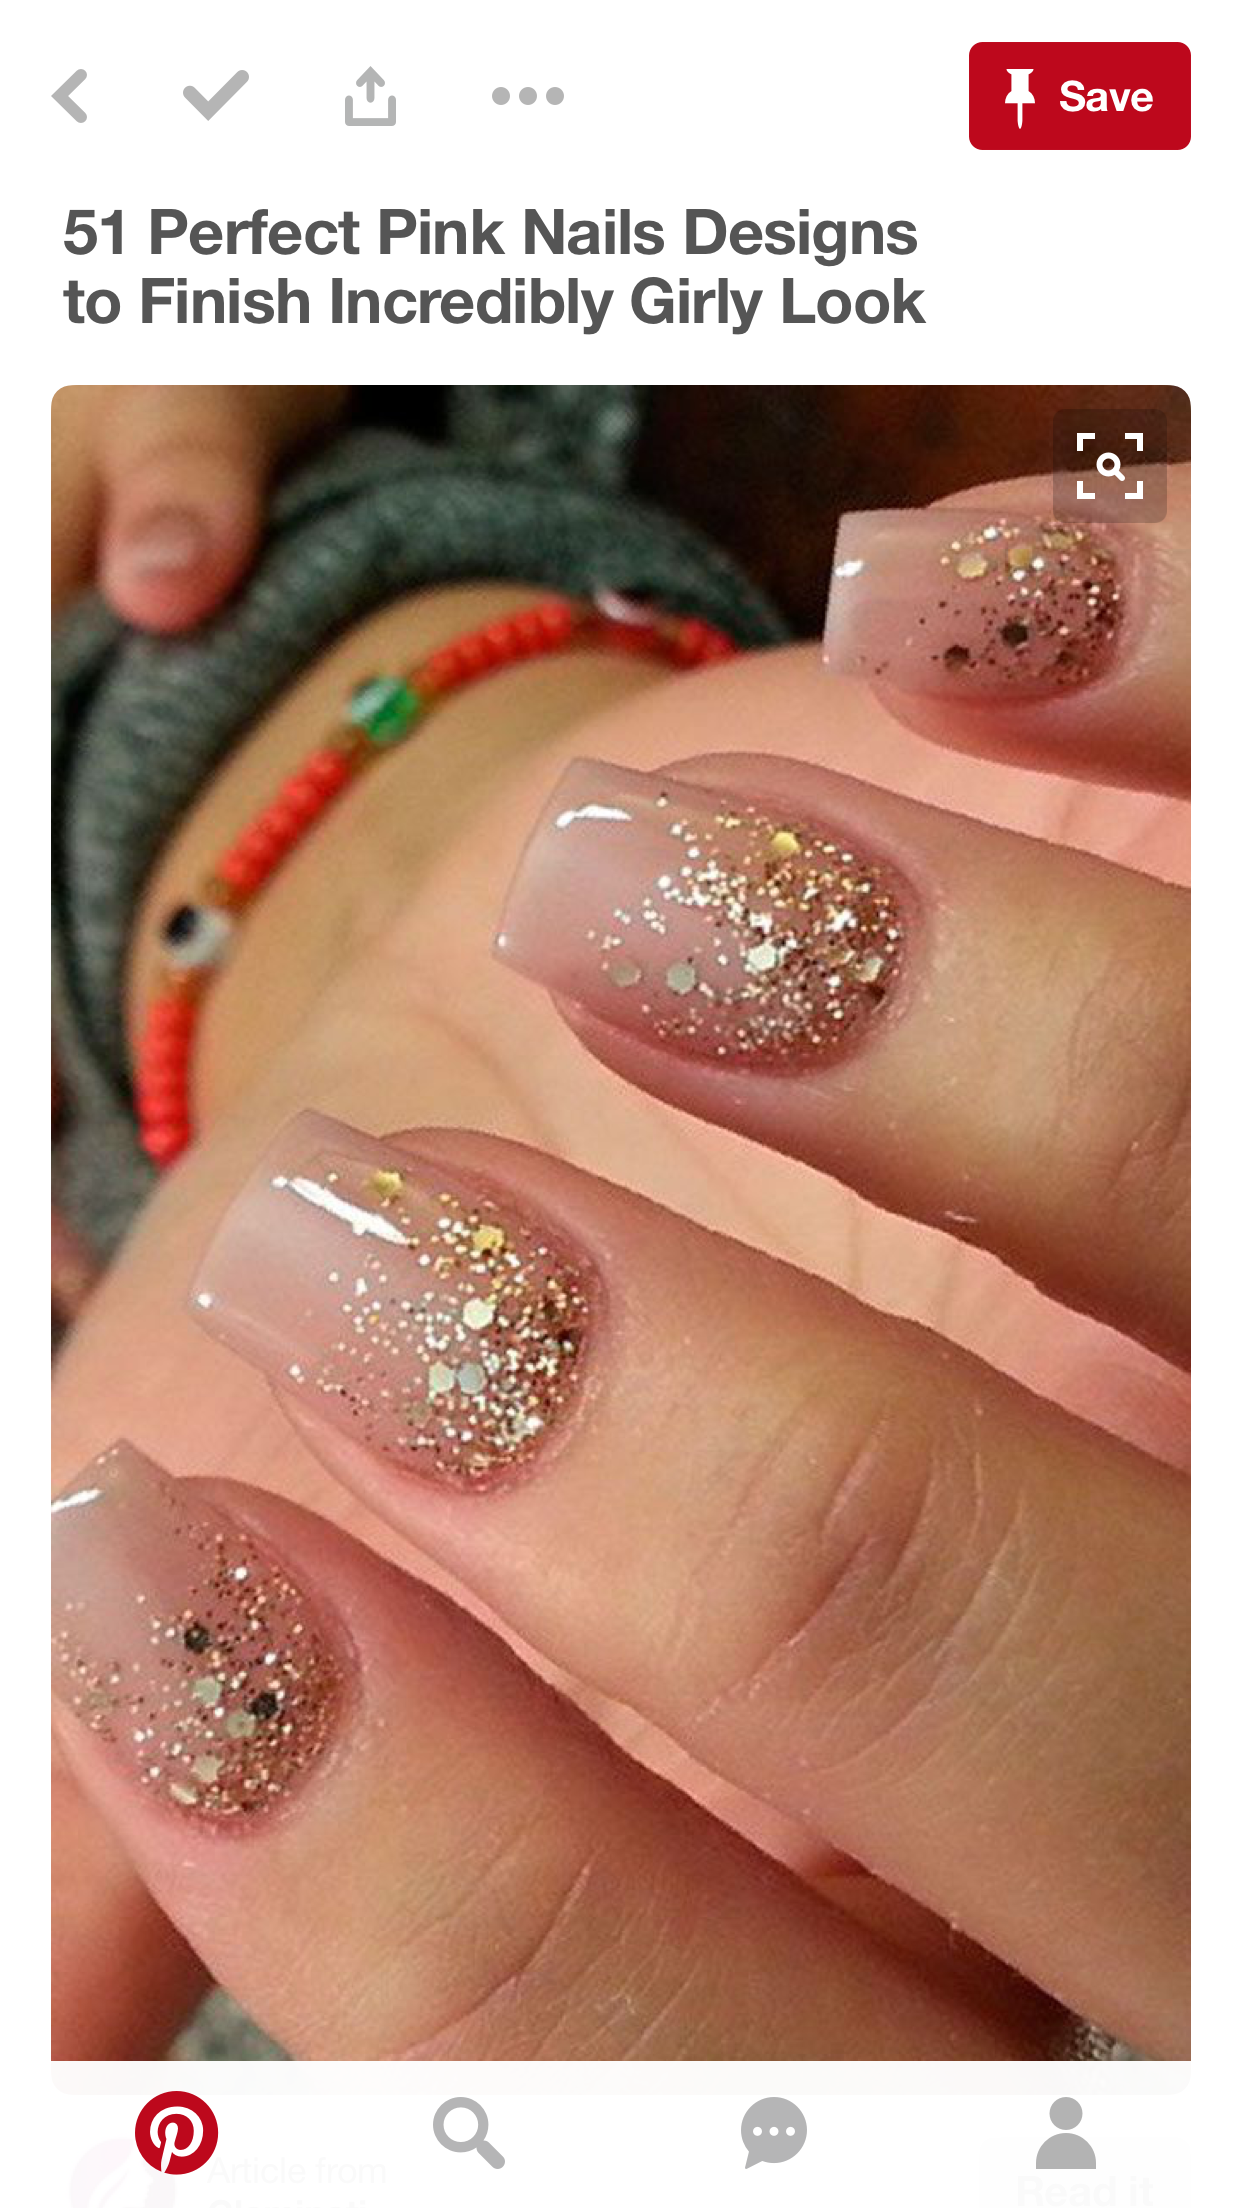 Pin by tina broadrib on manicures in pinterest makeup nail